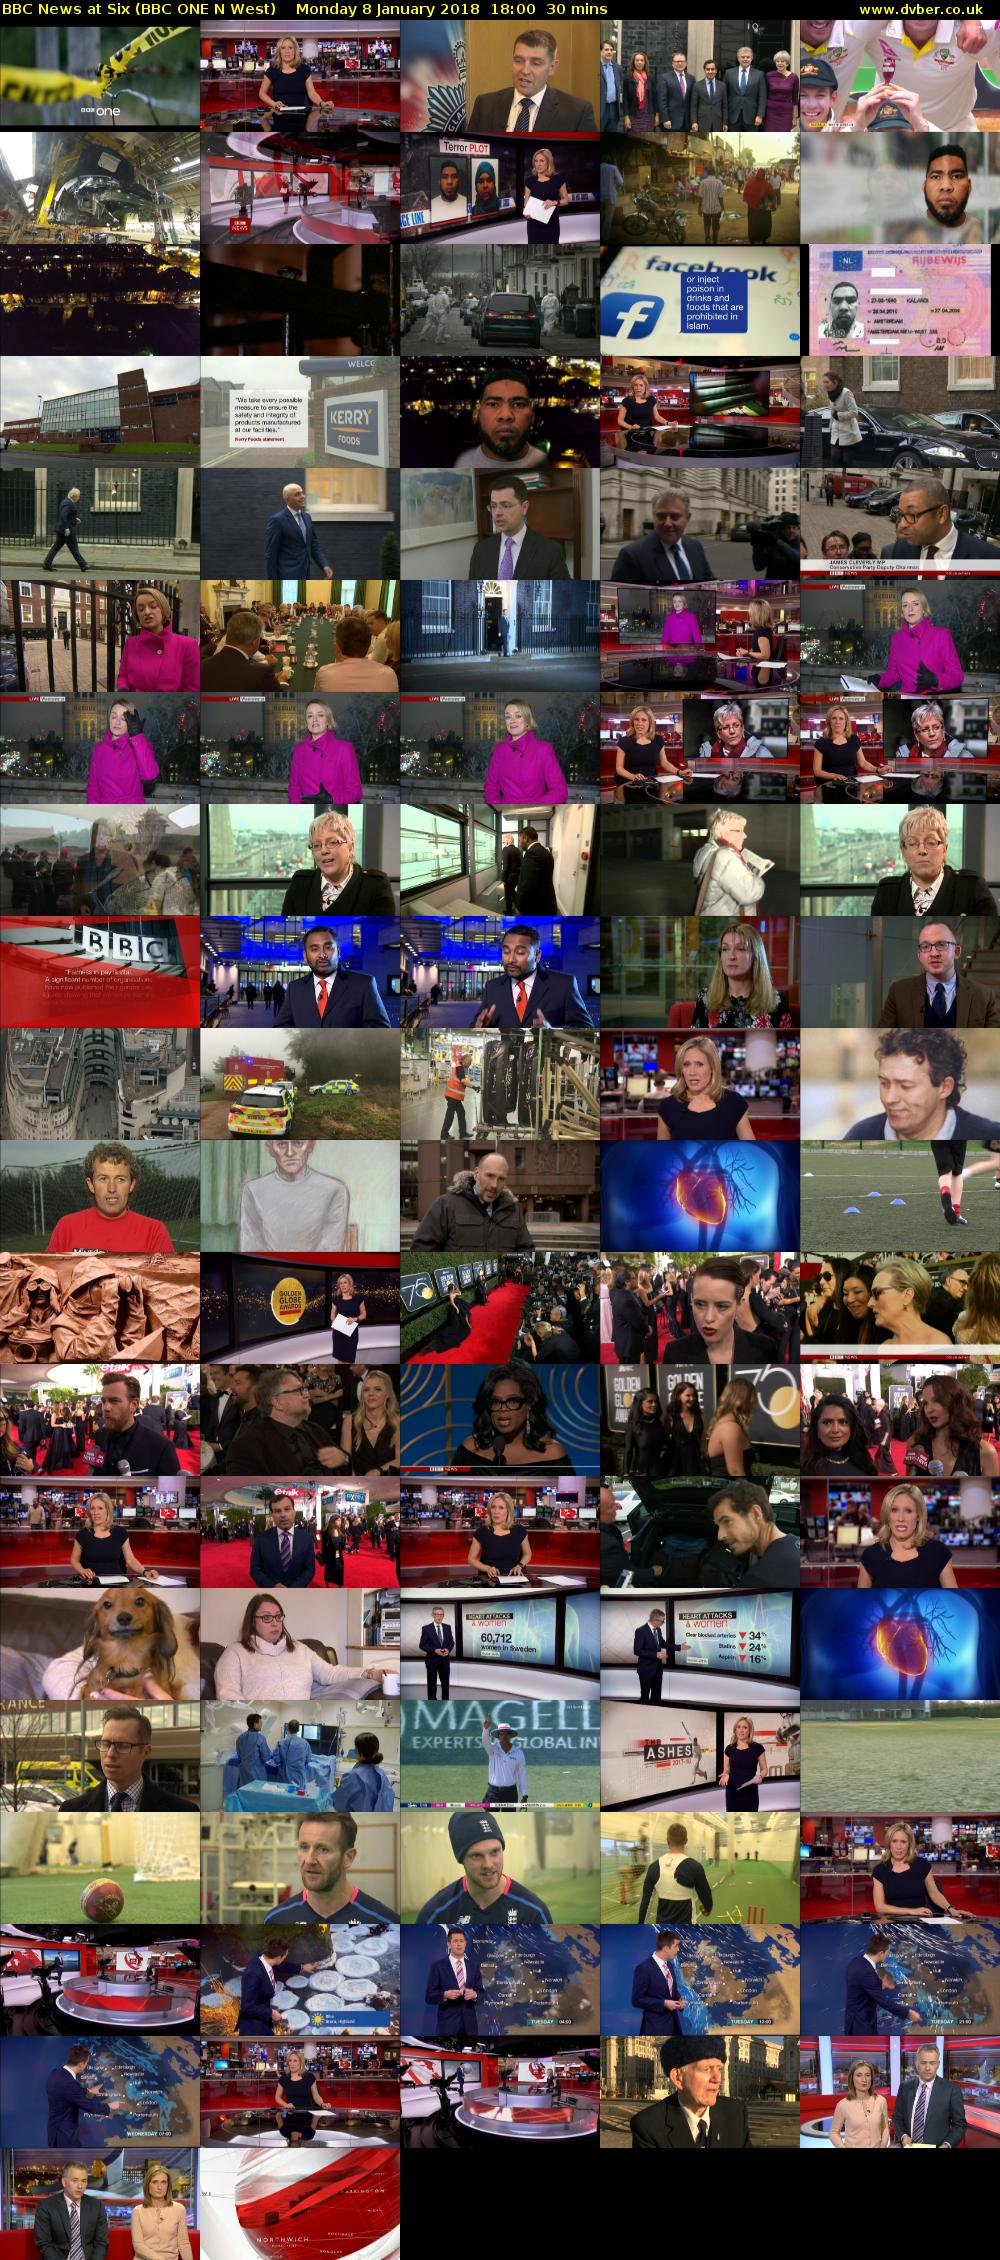 BBC News at Six (BBC ONE N West) Monday 8 January 2018 18:00 - 18:30